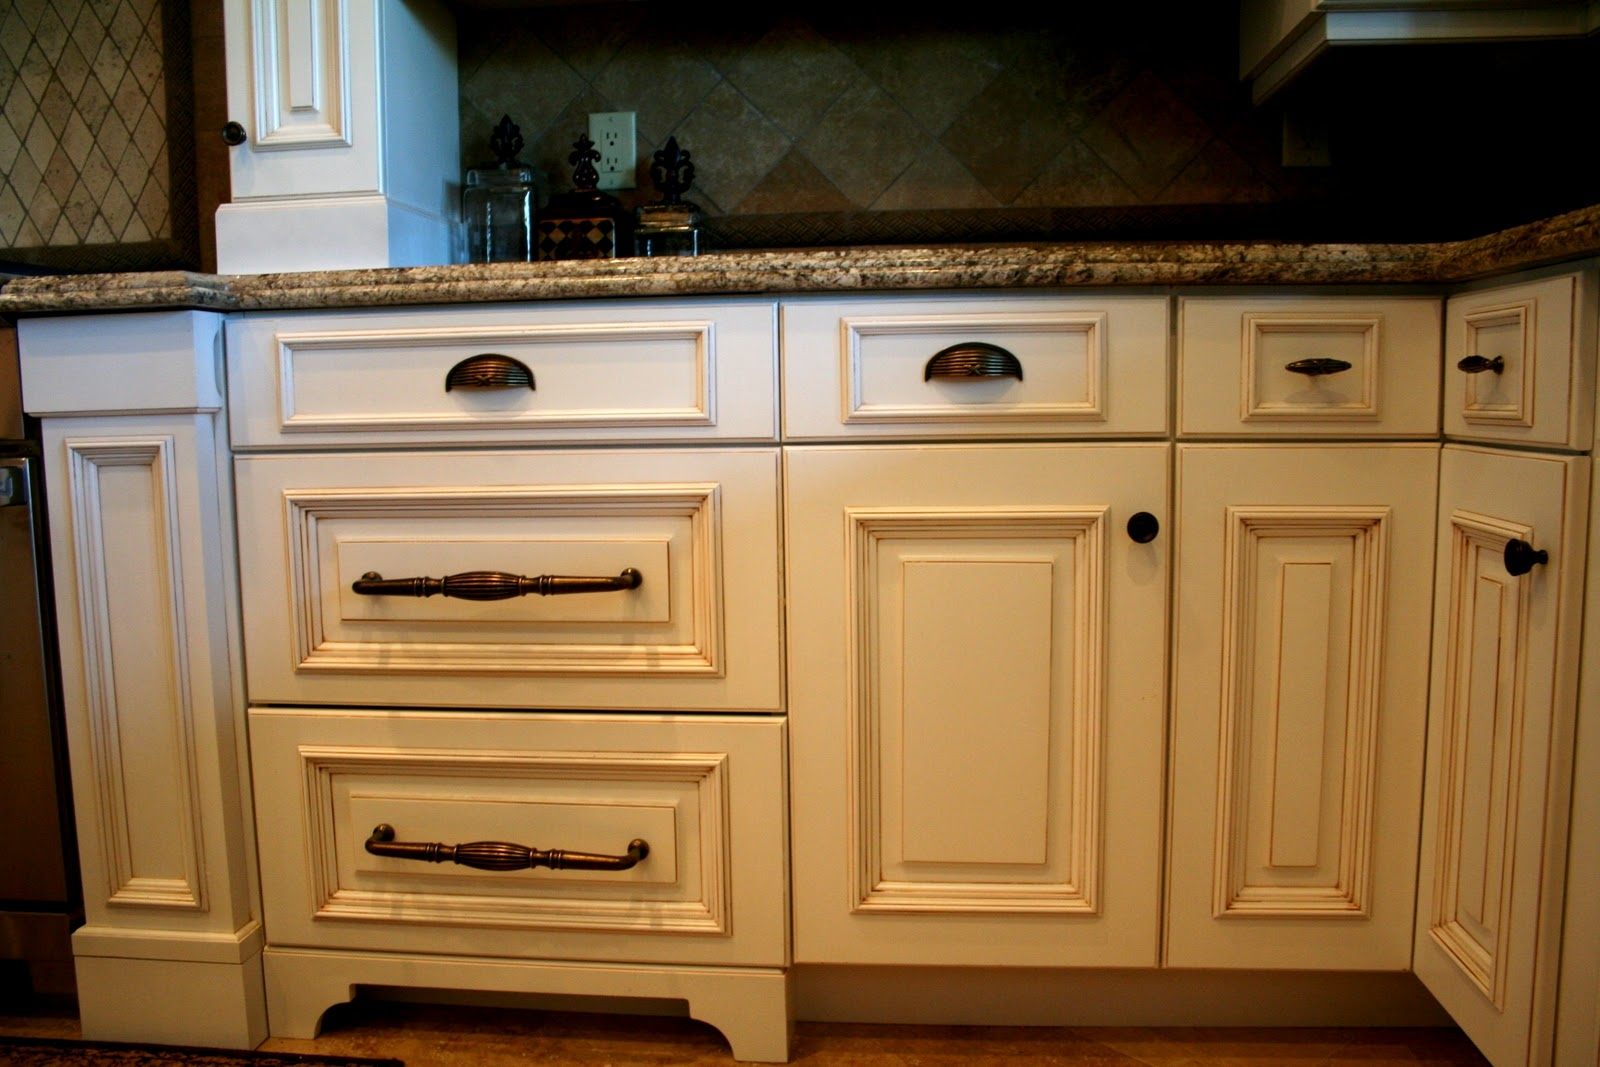 Kitchen Hardware For Cabinets And Drawers